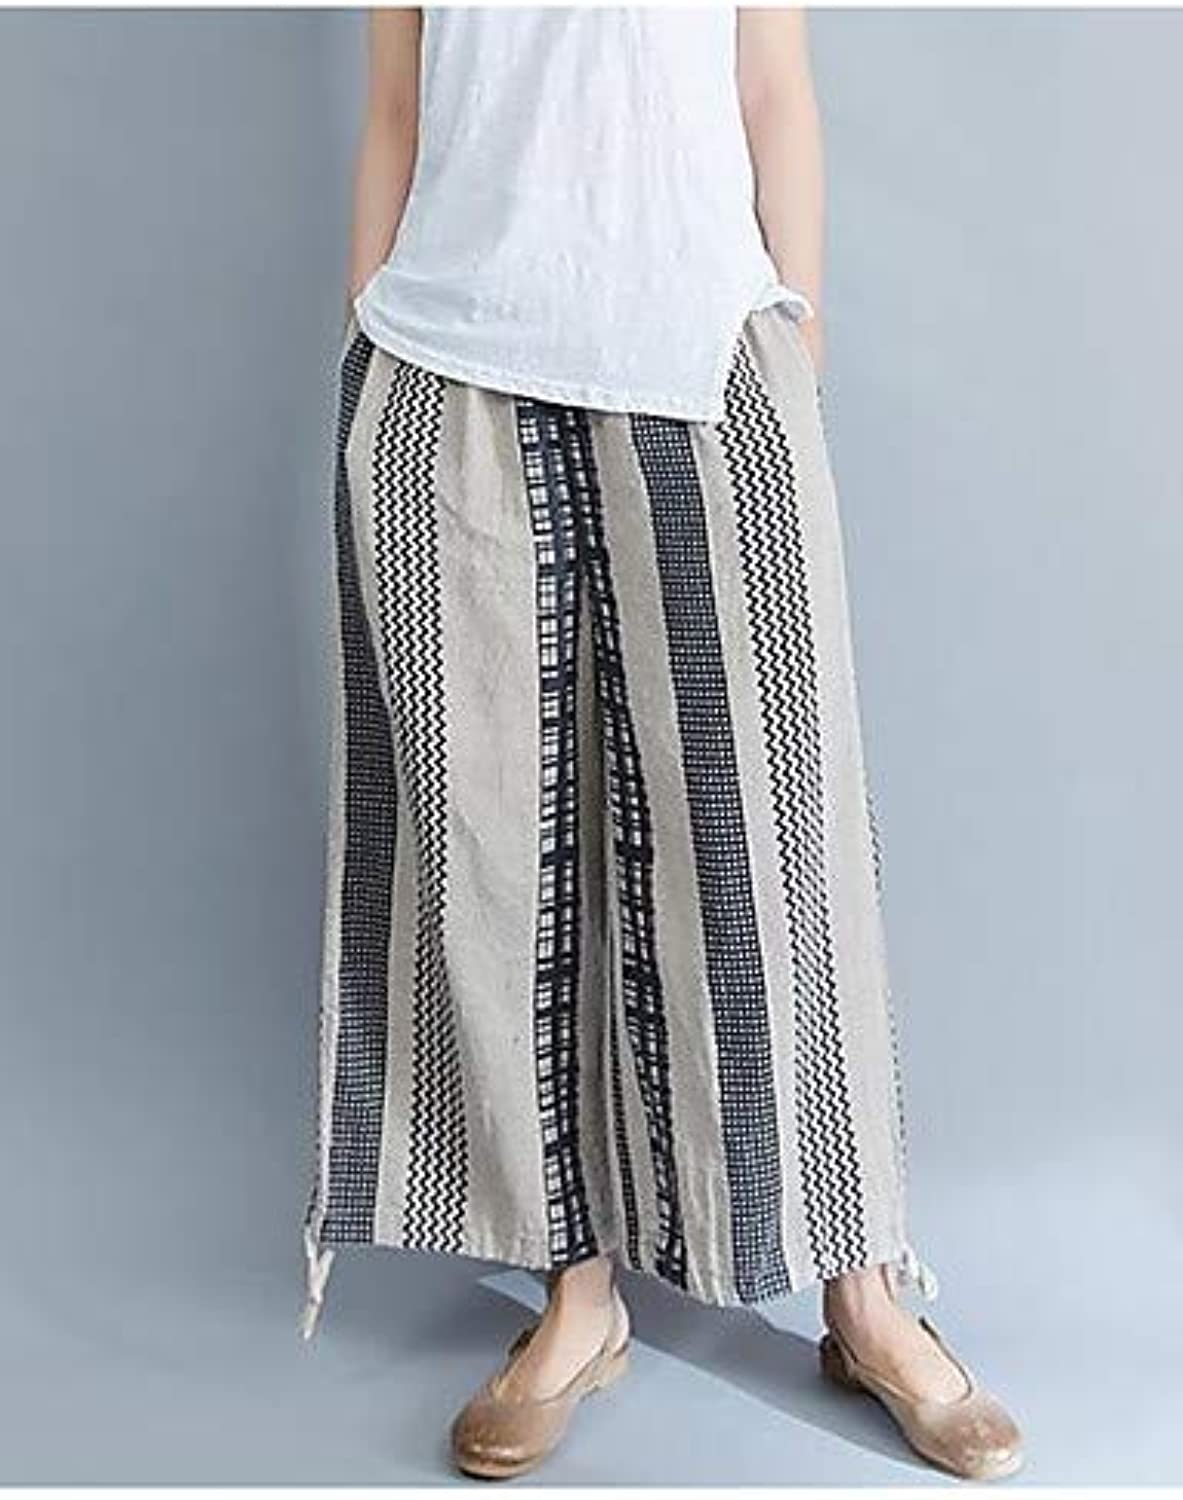 Women's Basic Wide Leg Pants  Solid colord bluee & White, Tassel